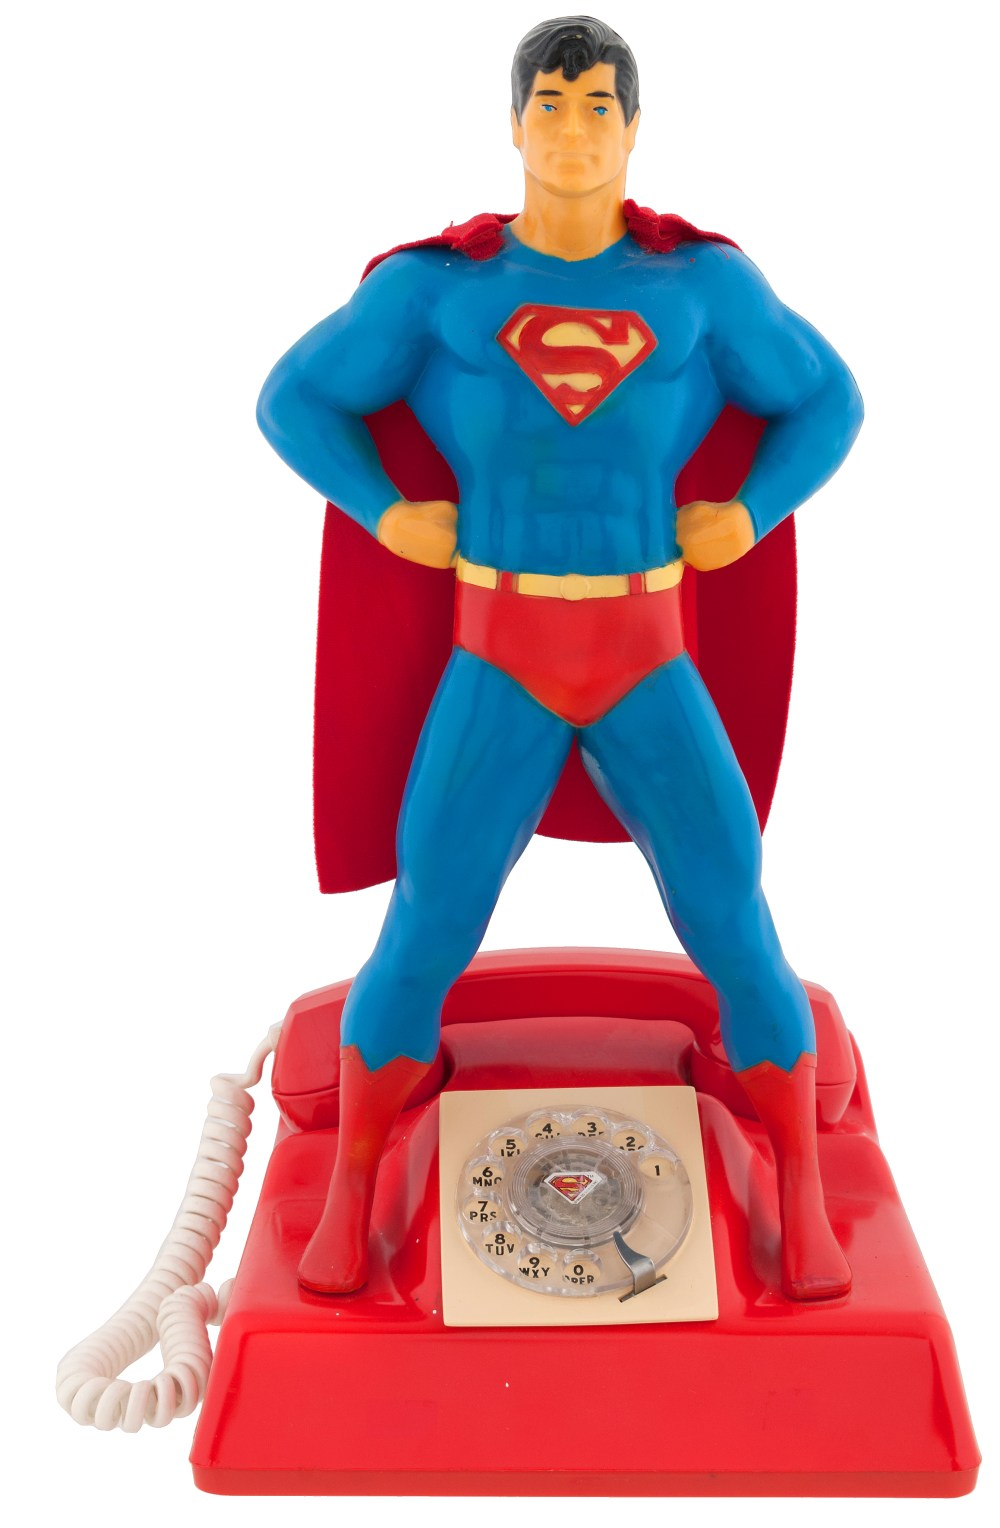 medium resolution of superman telephone 1978 rotary dial model by microcommunications